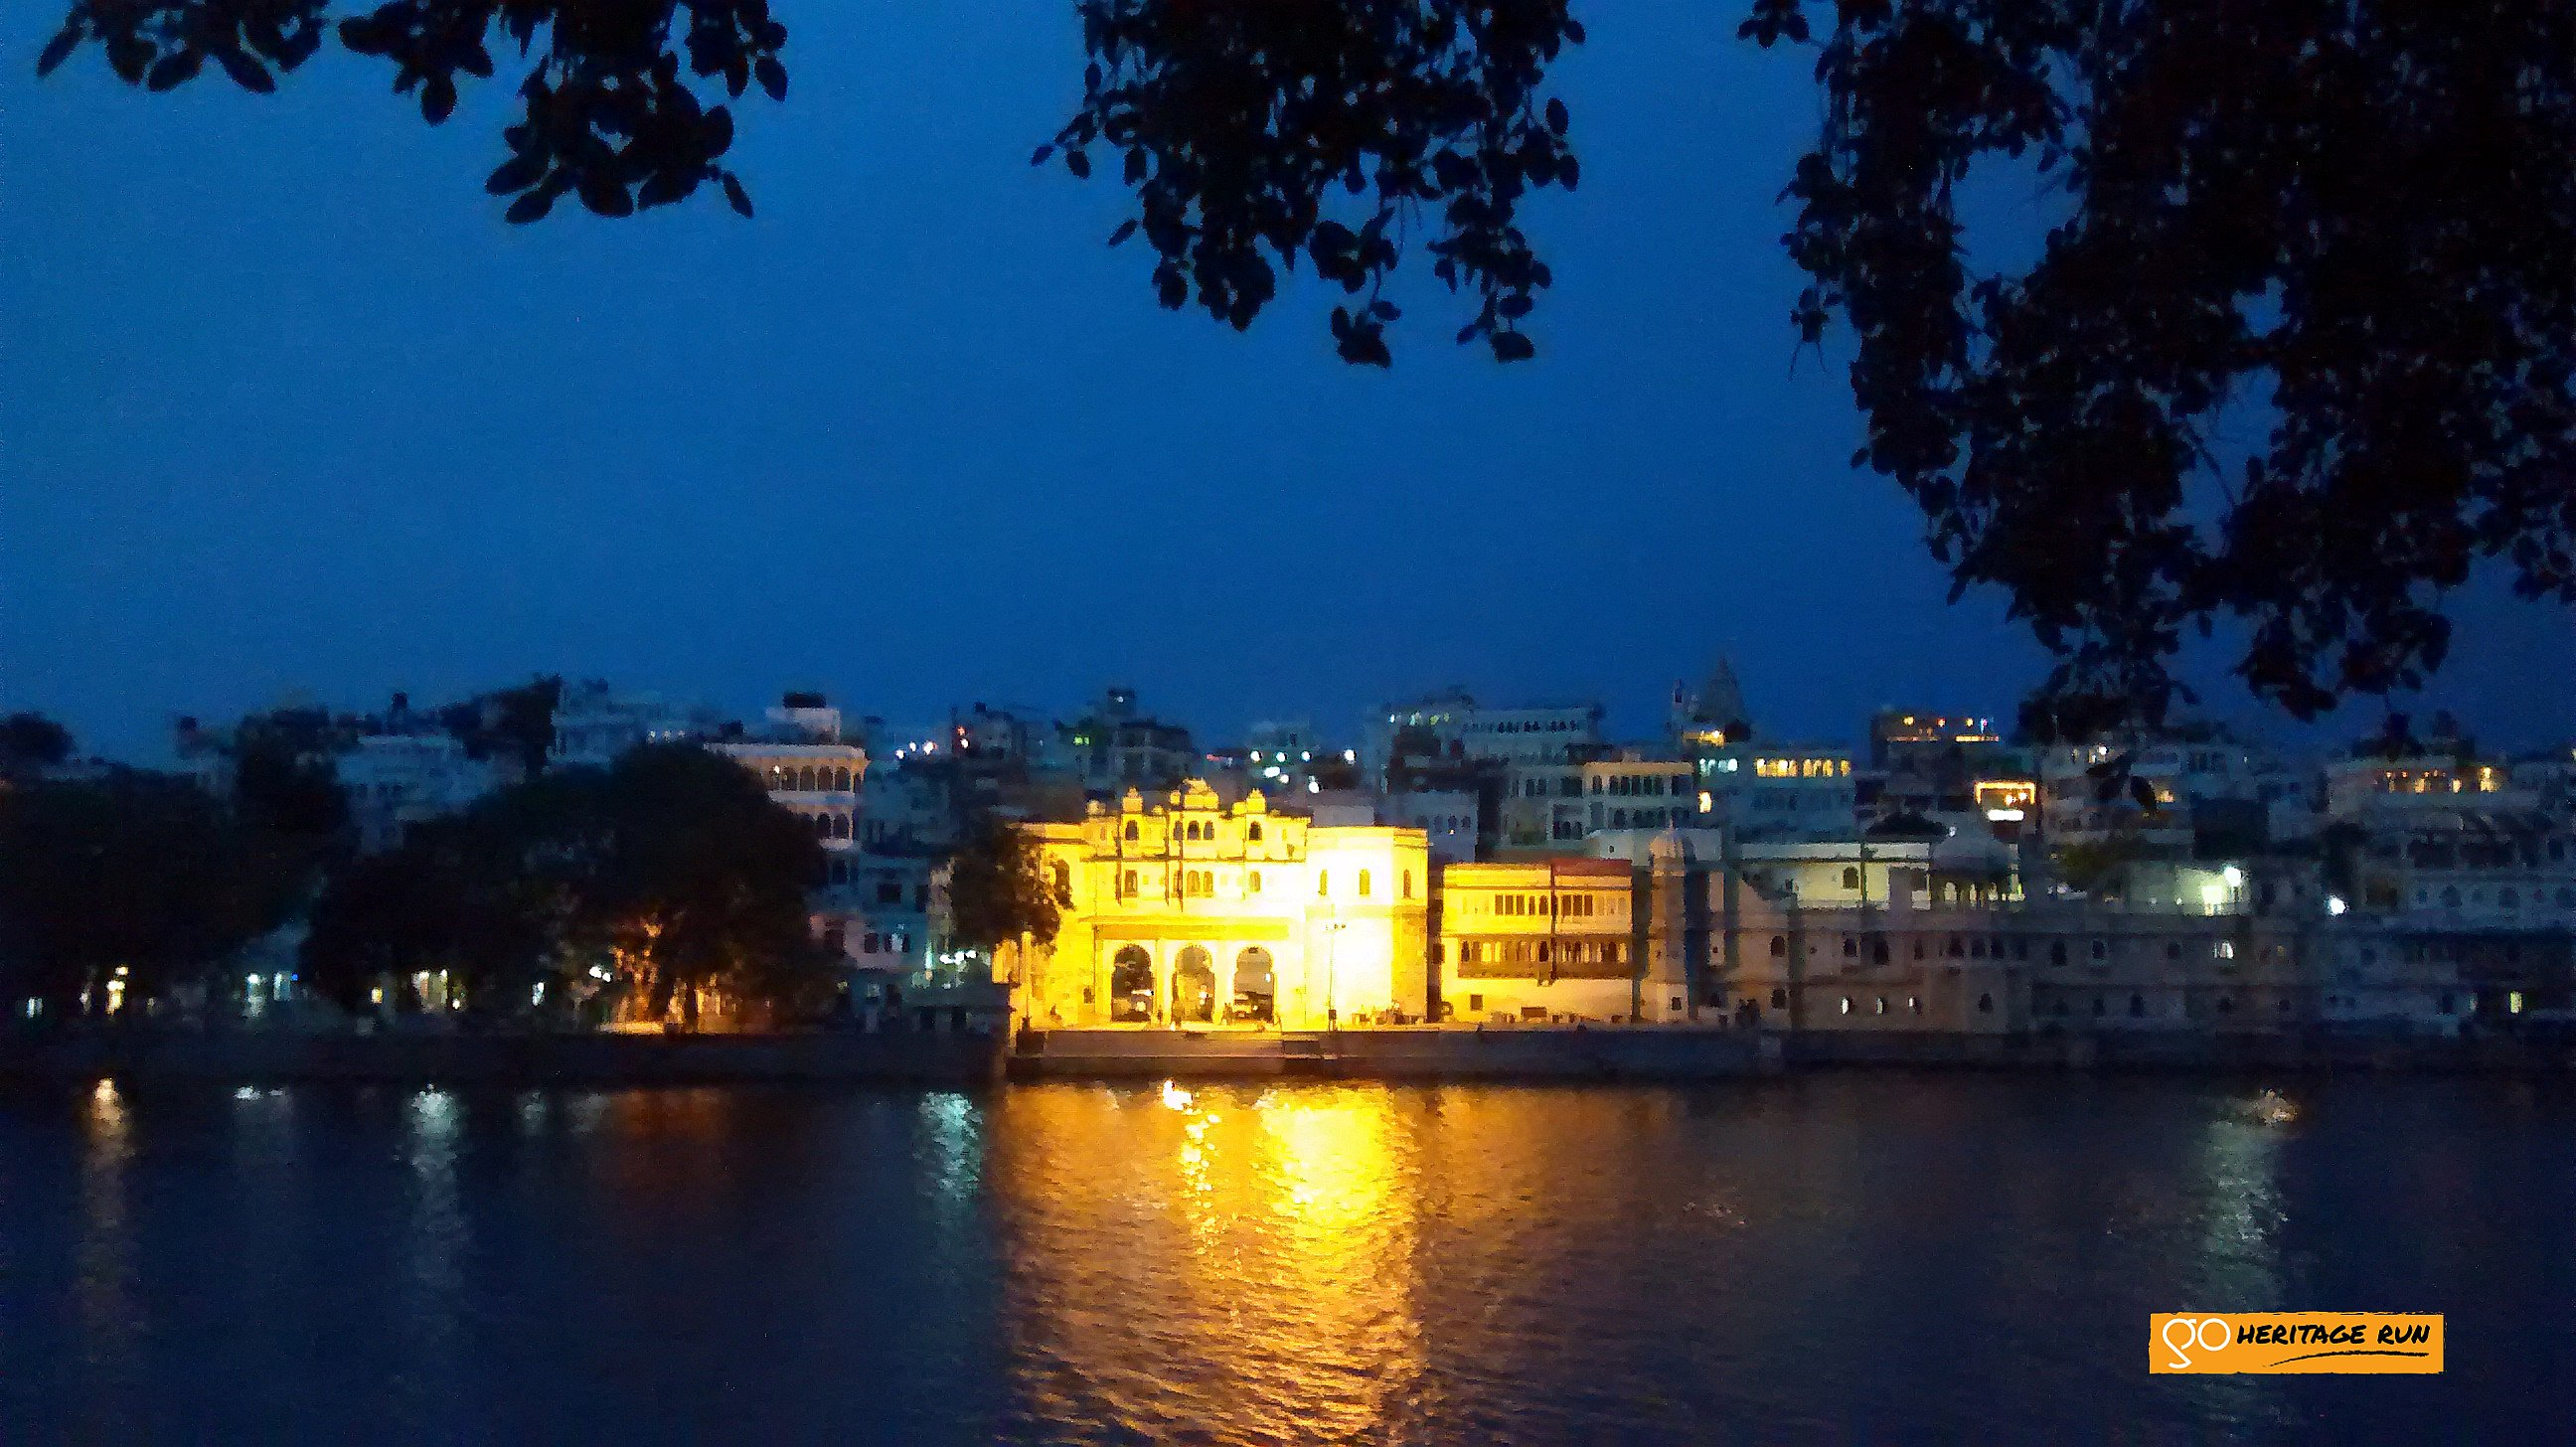 Bagor haveli from Ambrai ghat